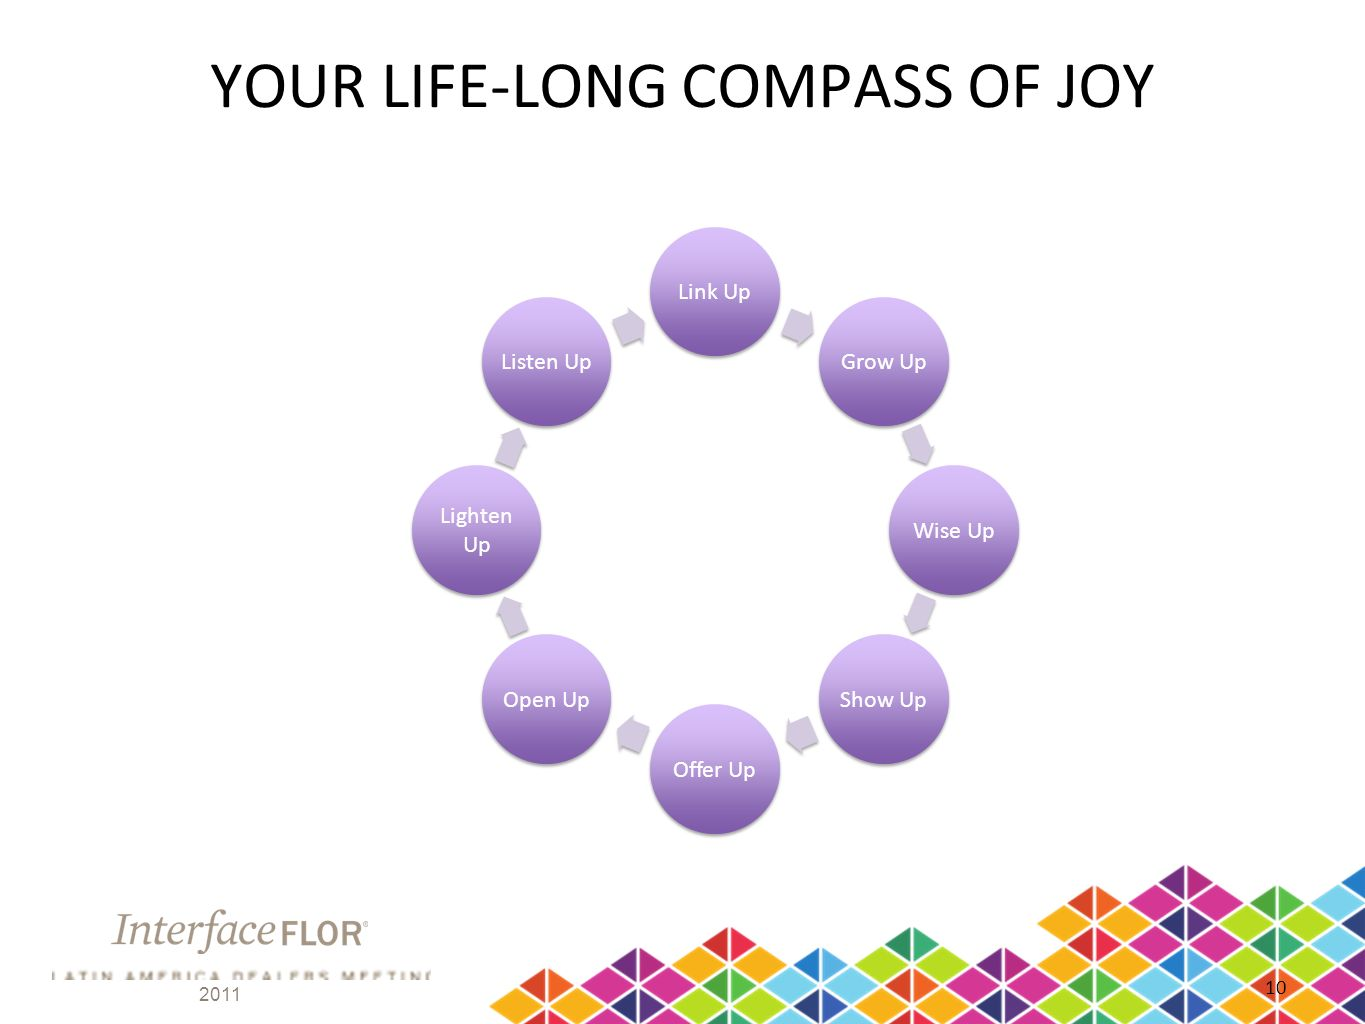 YOUR LIFE-LONG COMPASS OF JOY Link Up Grow Up Wise Up Show Up Offer Up Open Up Lighten Up Listen Up